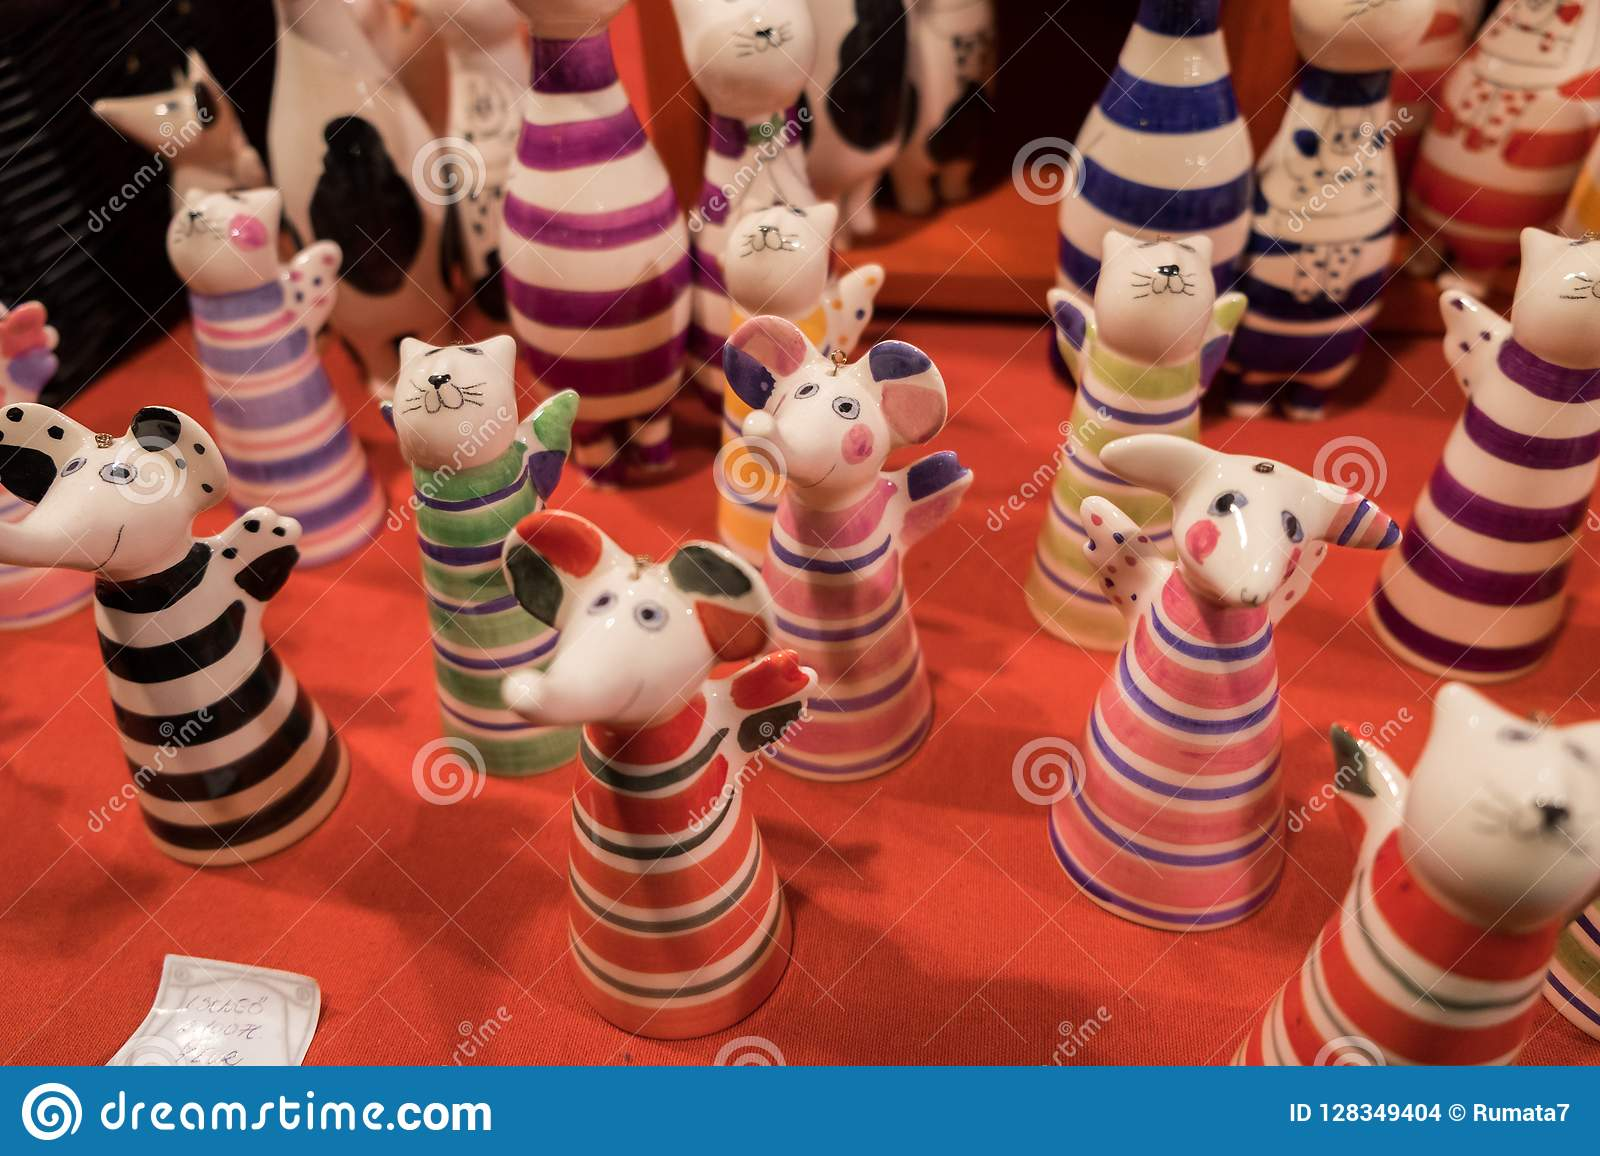 Funny ceramic cats and mouses figurines for sale